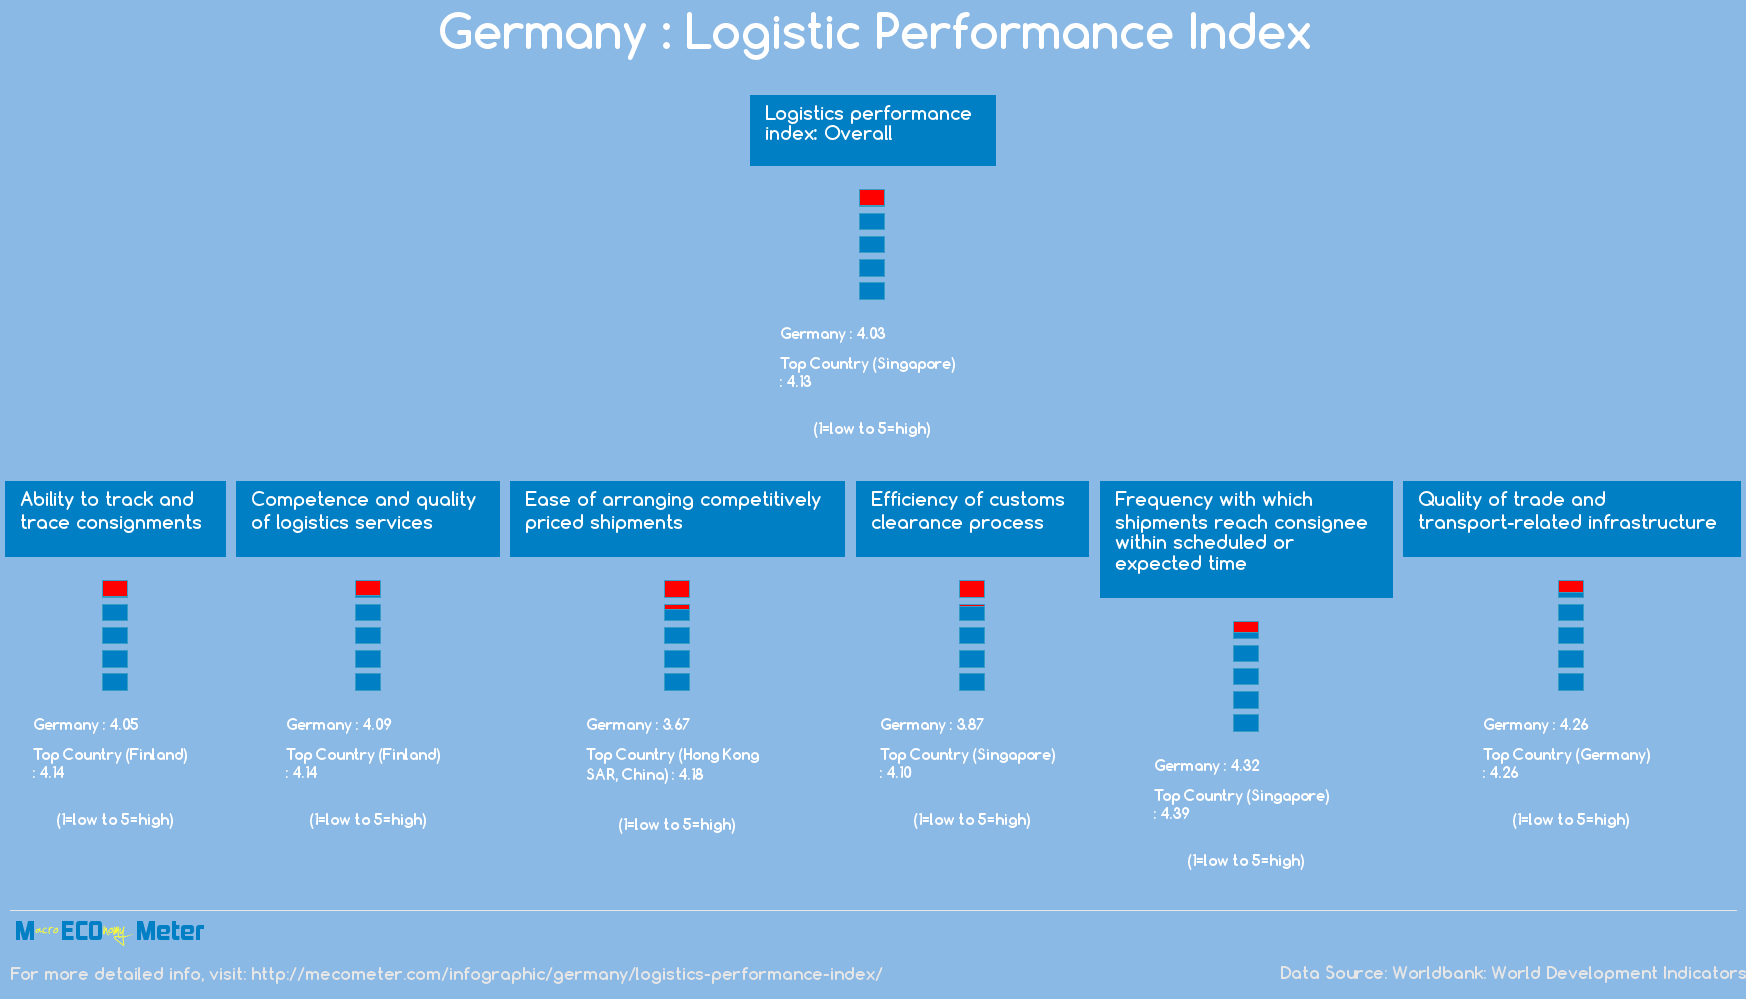 Germany : Logistic Performance Index